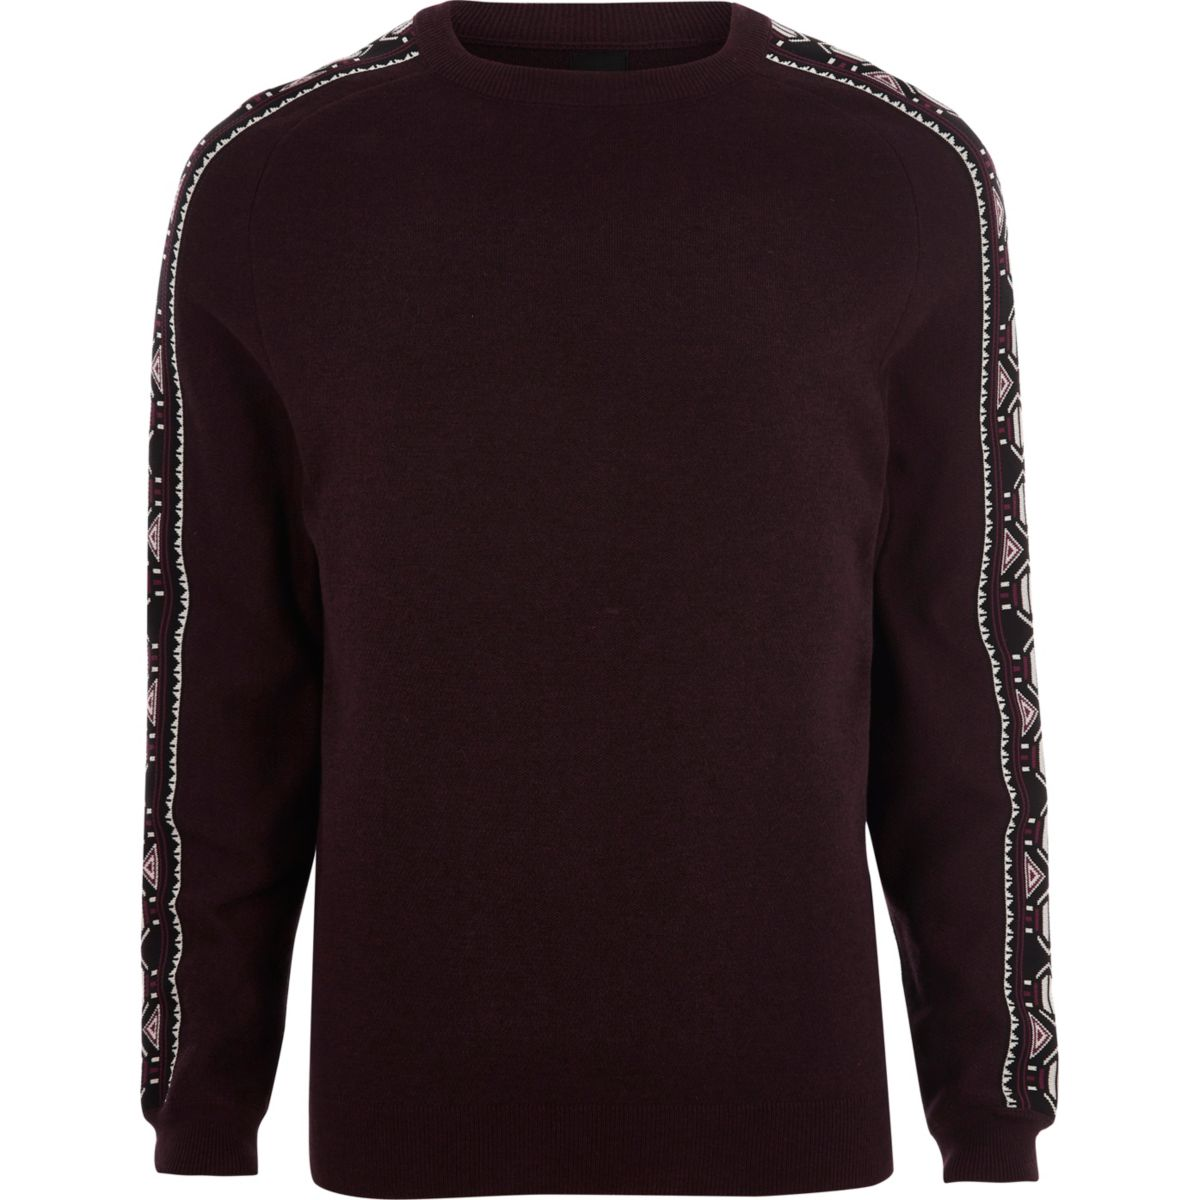 Dark red aztec sleeve knit sweater - Sweaters & Cardigans - Sale - men